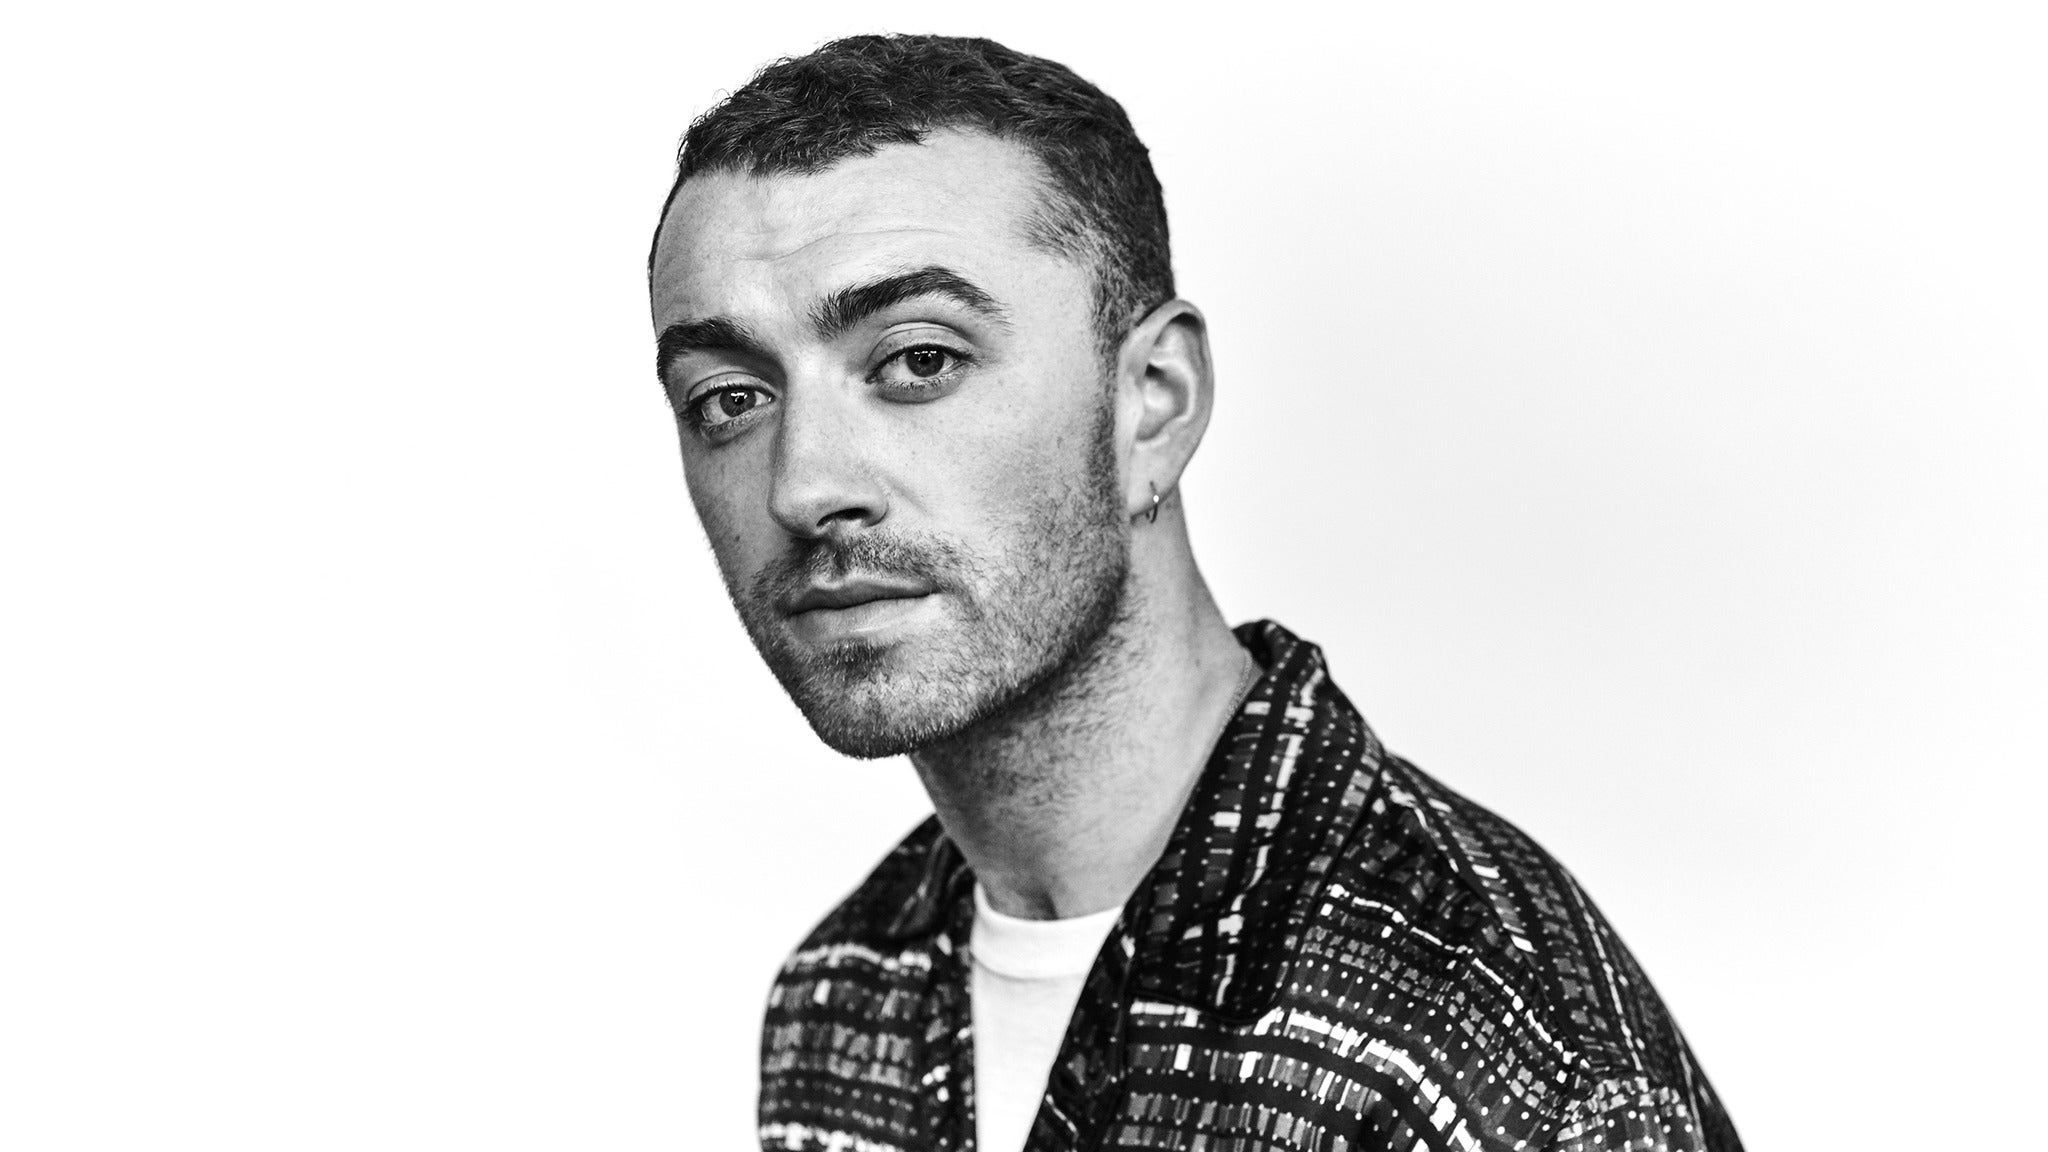 Sam Smith: The Thrill Of It All Tour at Gila River Arena